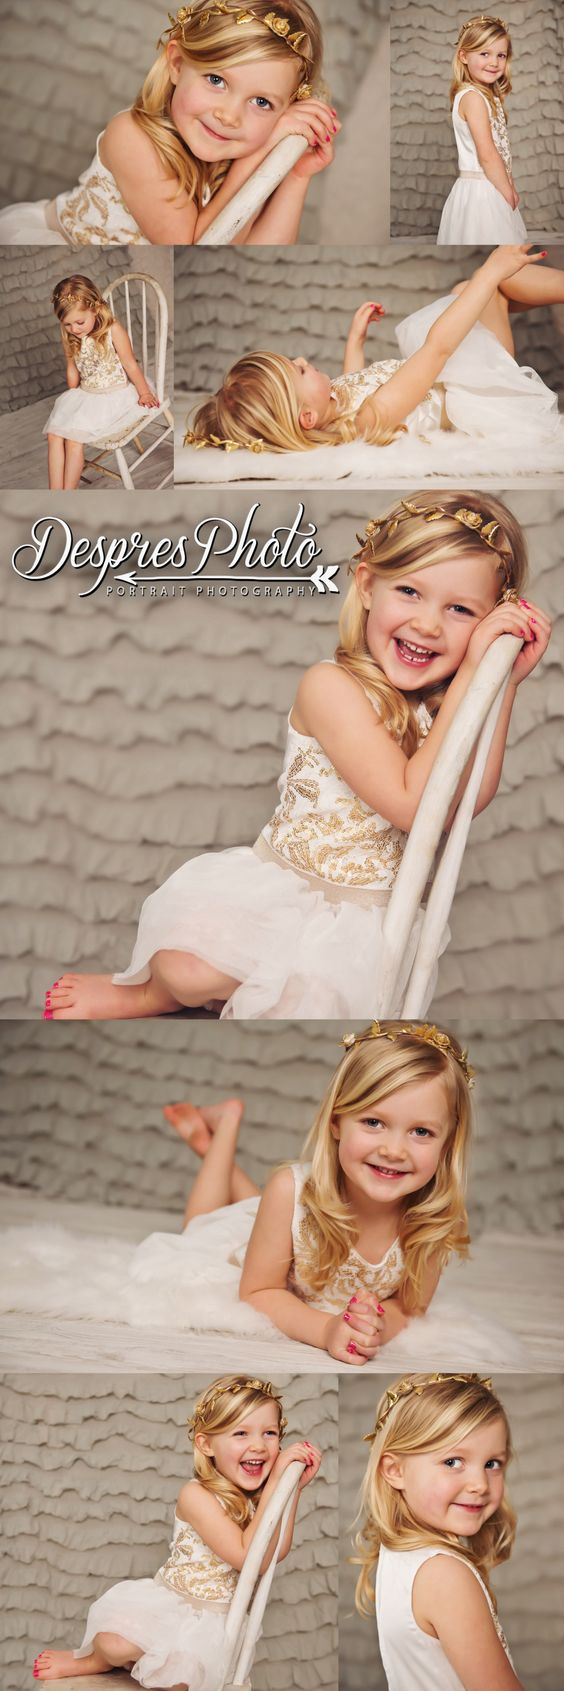 Simplicity Mini Sessions » Despres Photography